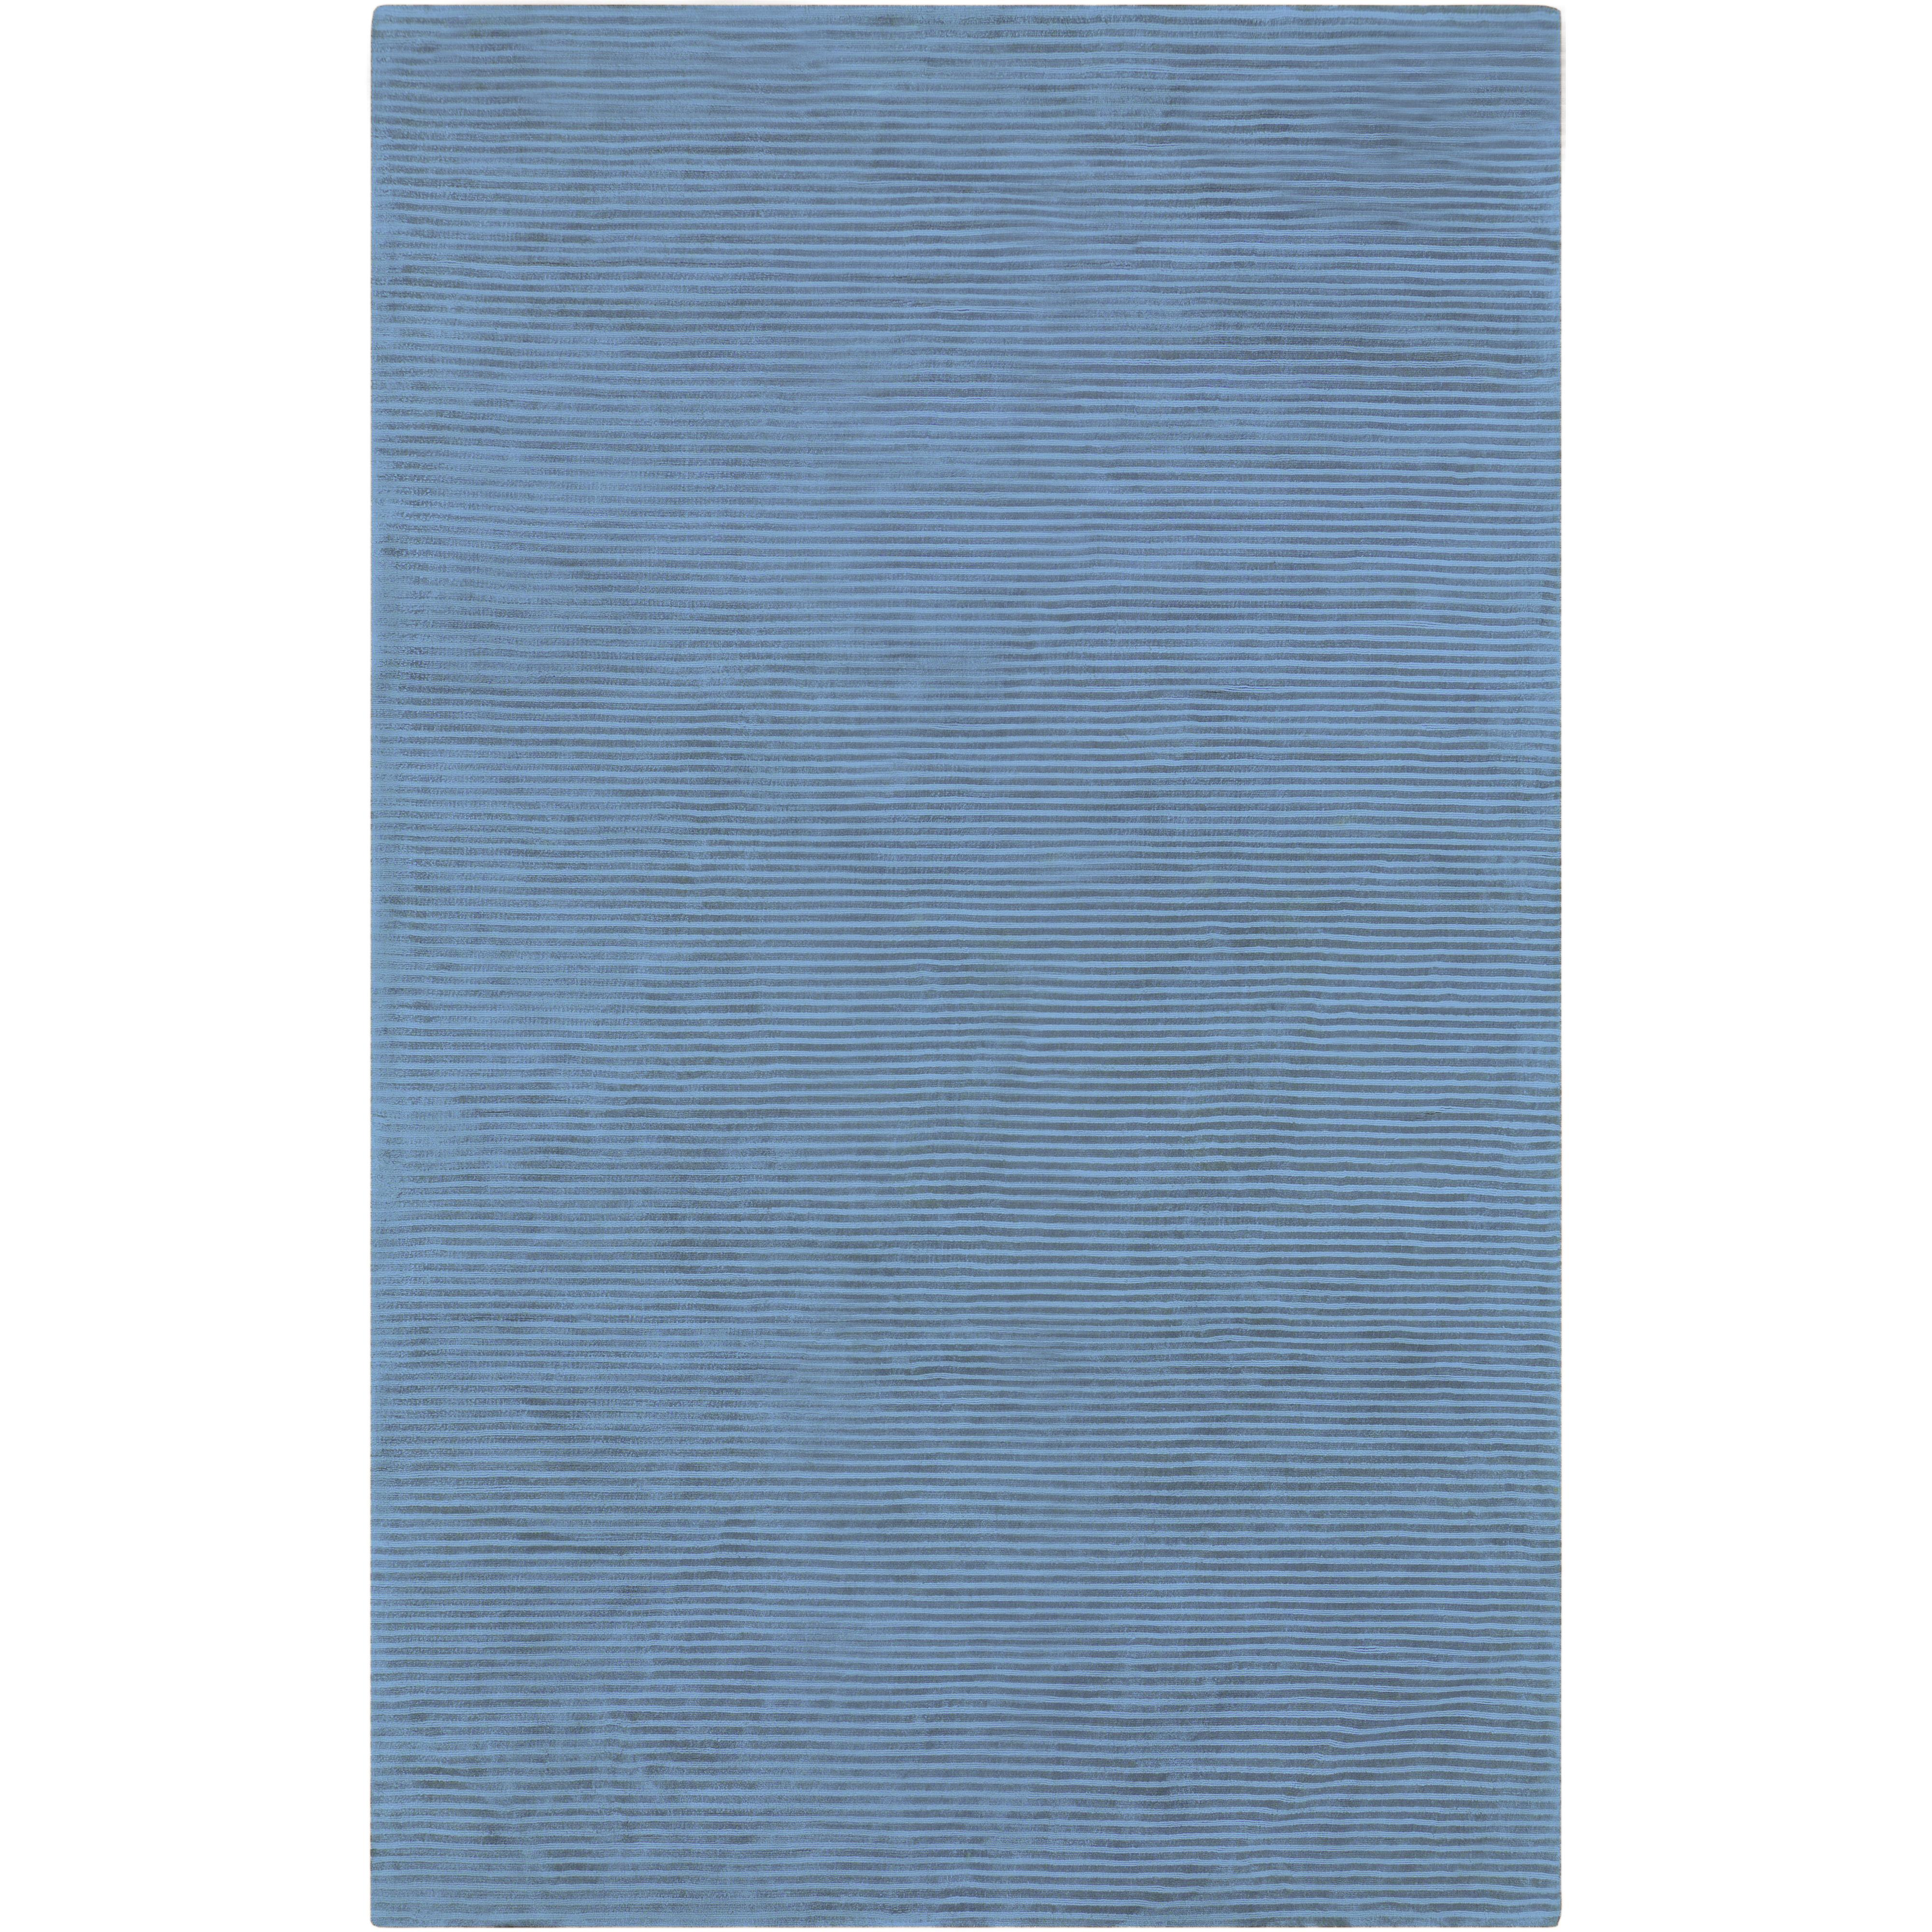 Surya Rugs Graphite 5' x 8' - Item Number: GPH54-58